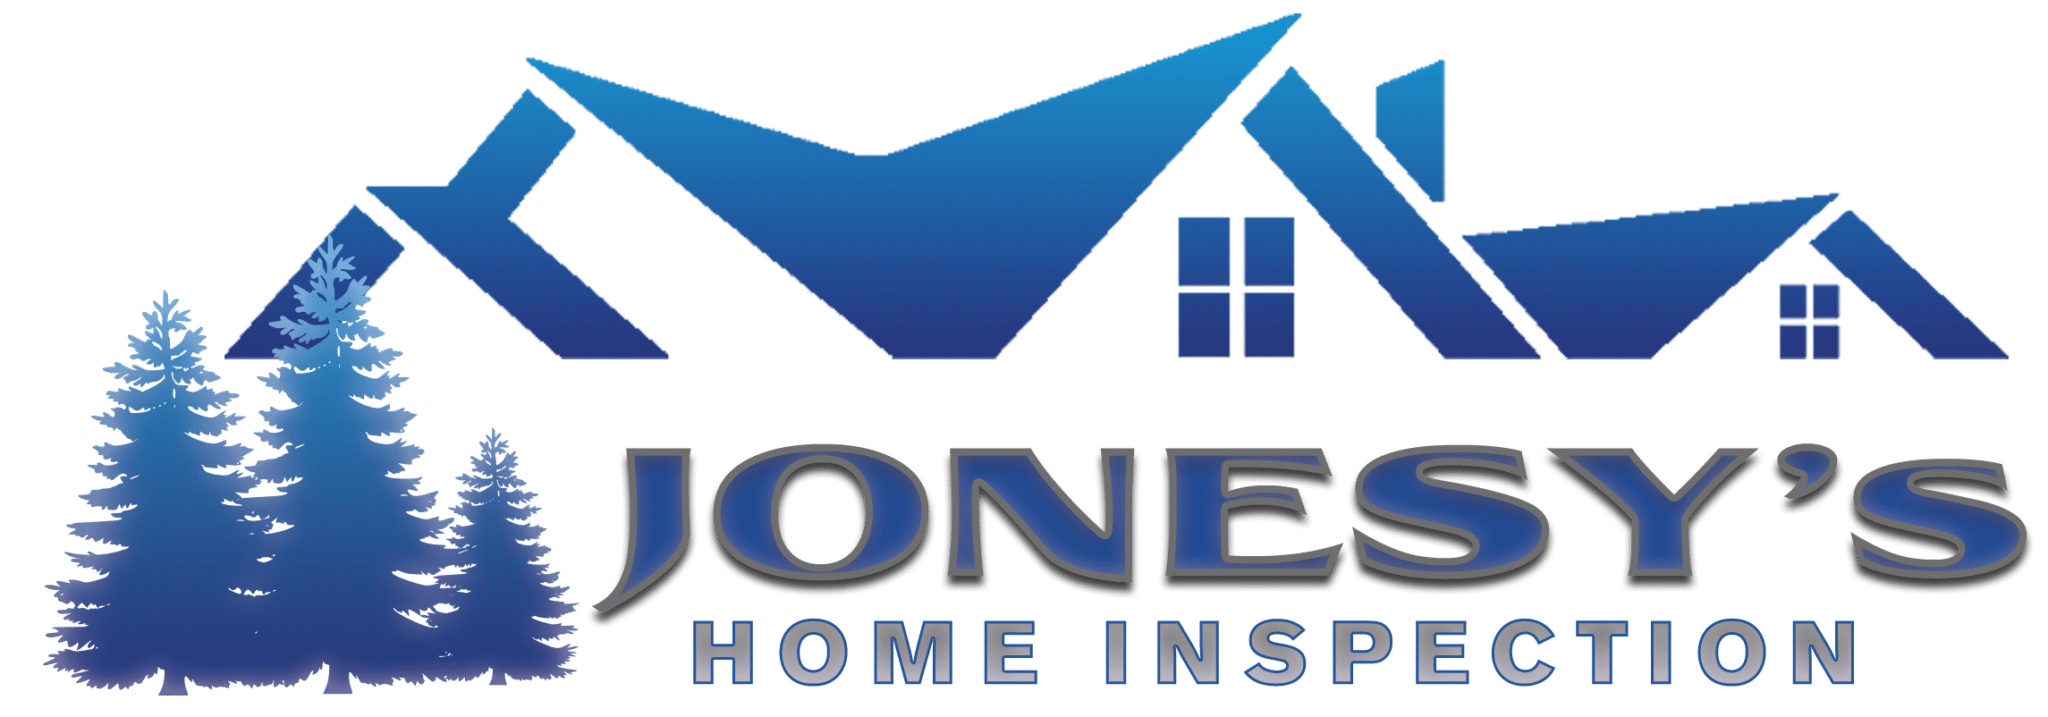 Jonesys Home Inspection